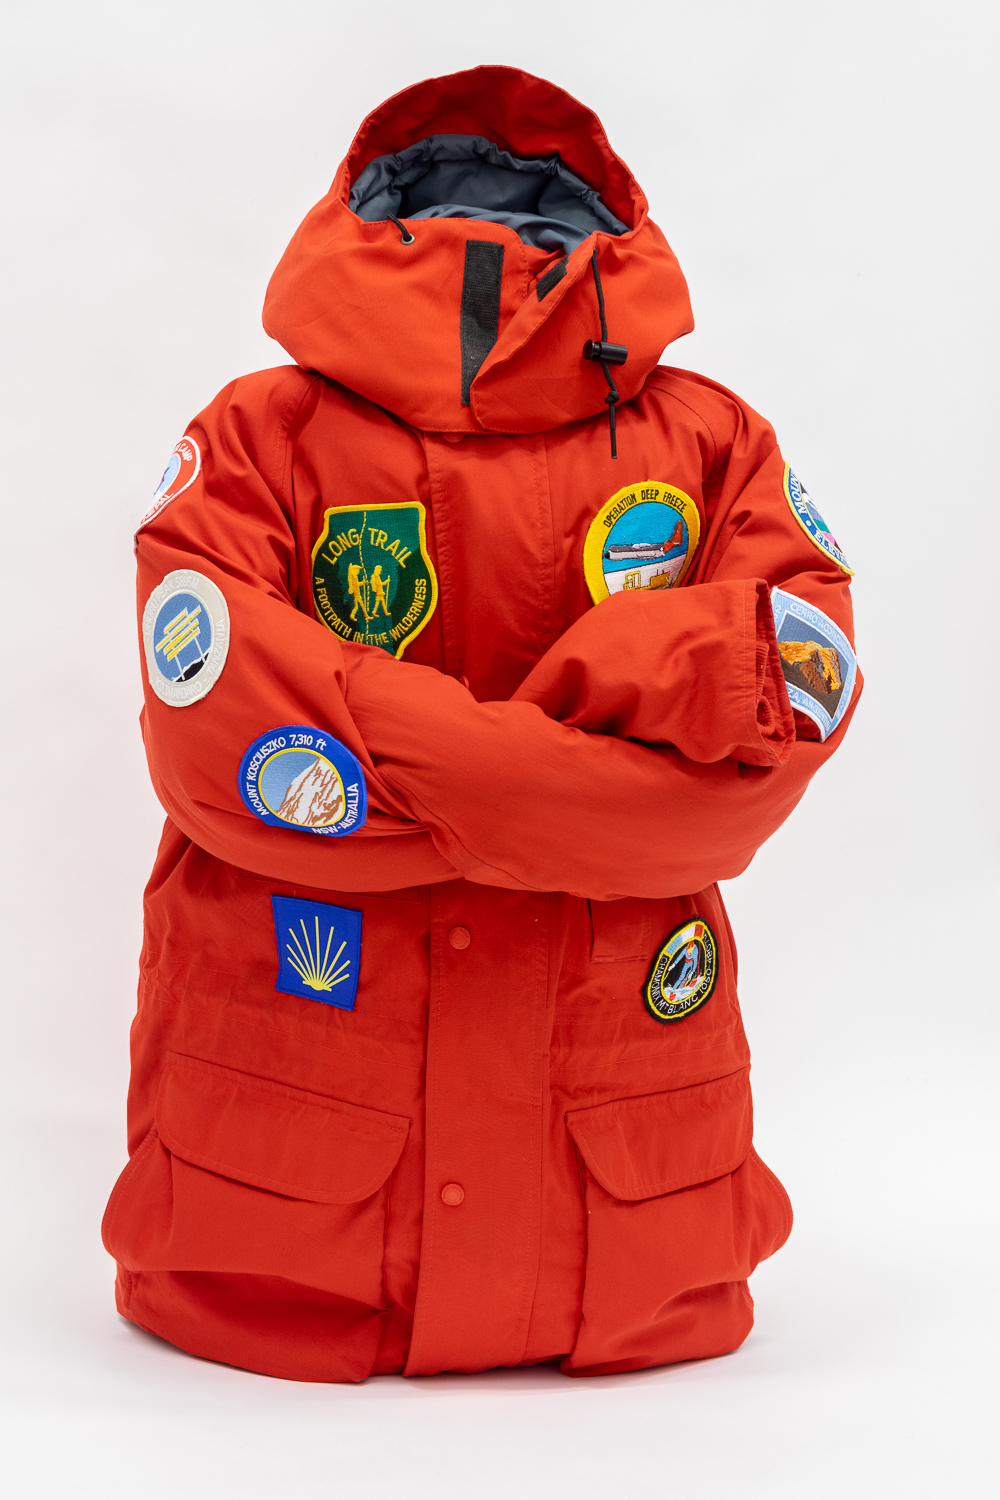 Rob Sohmer - Coat with Patches